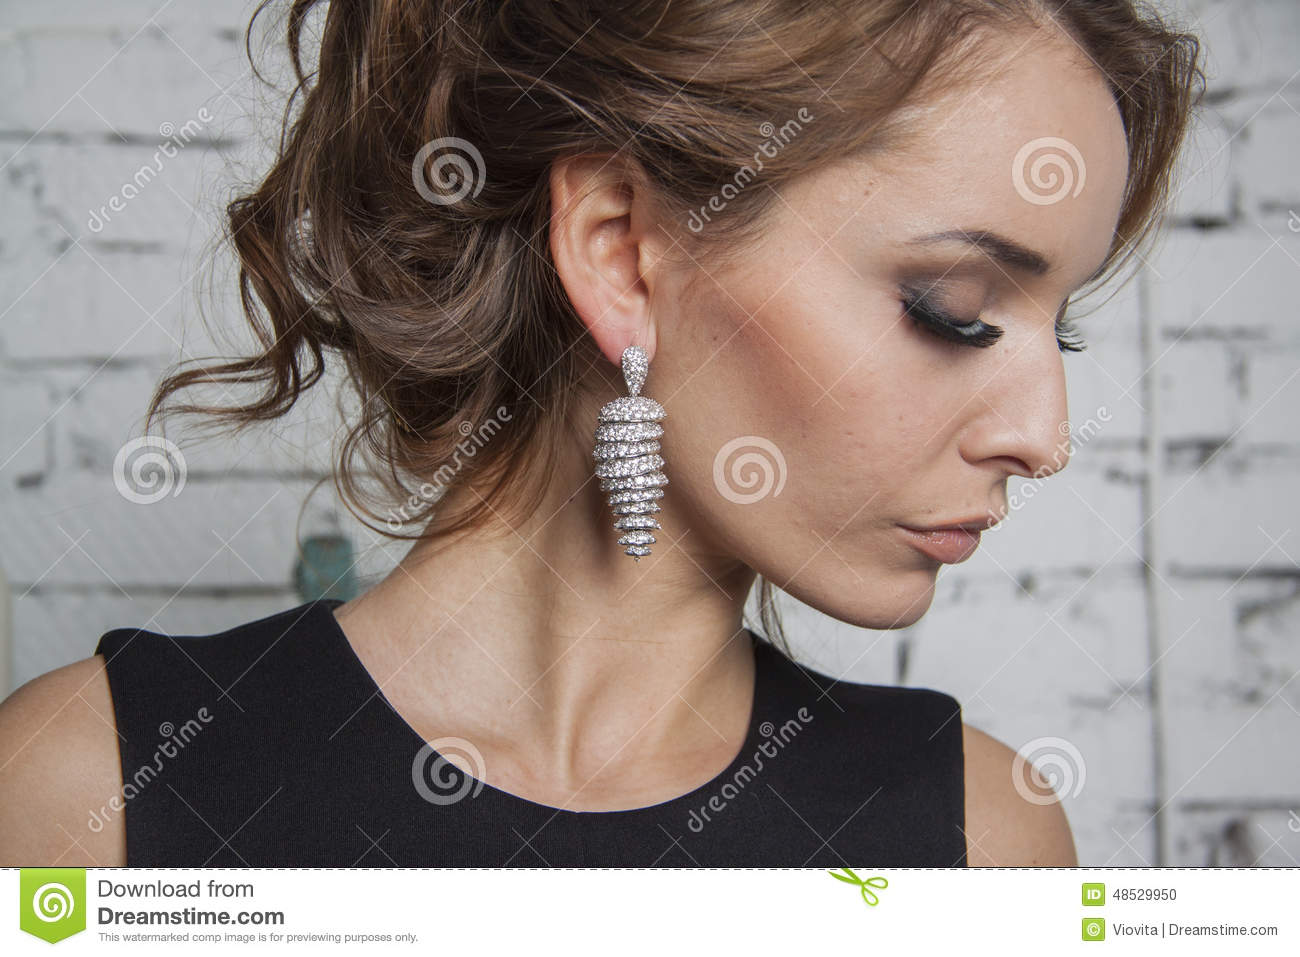 Girl In Black Gown And Luxury Earrings Stock Photo Image Of